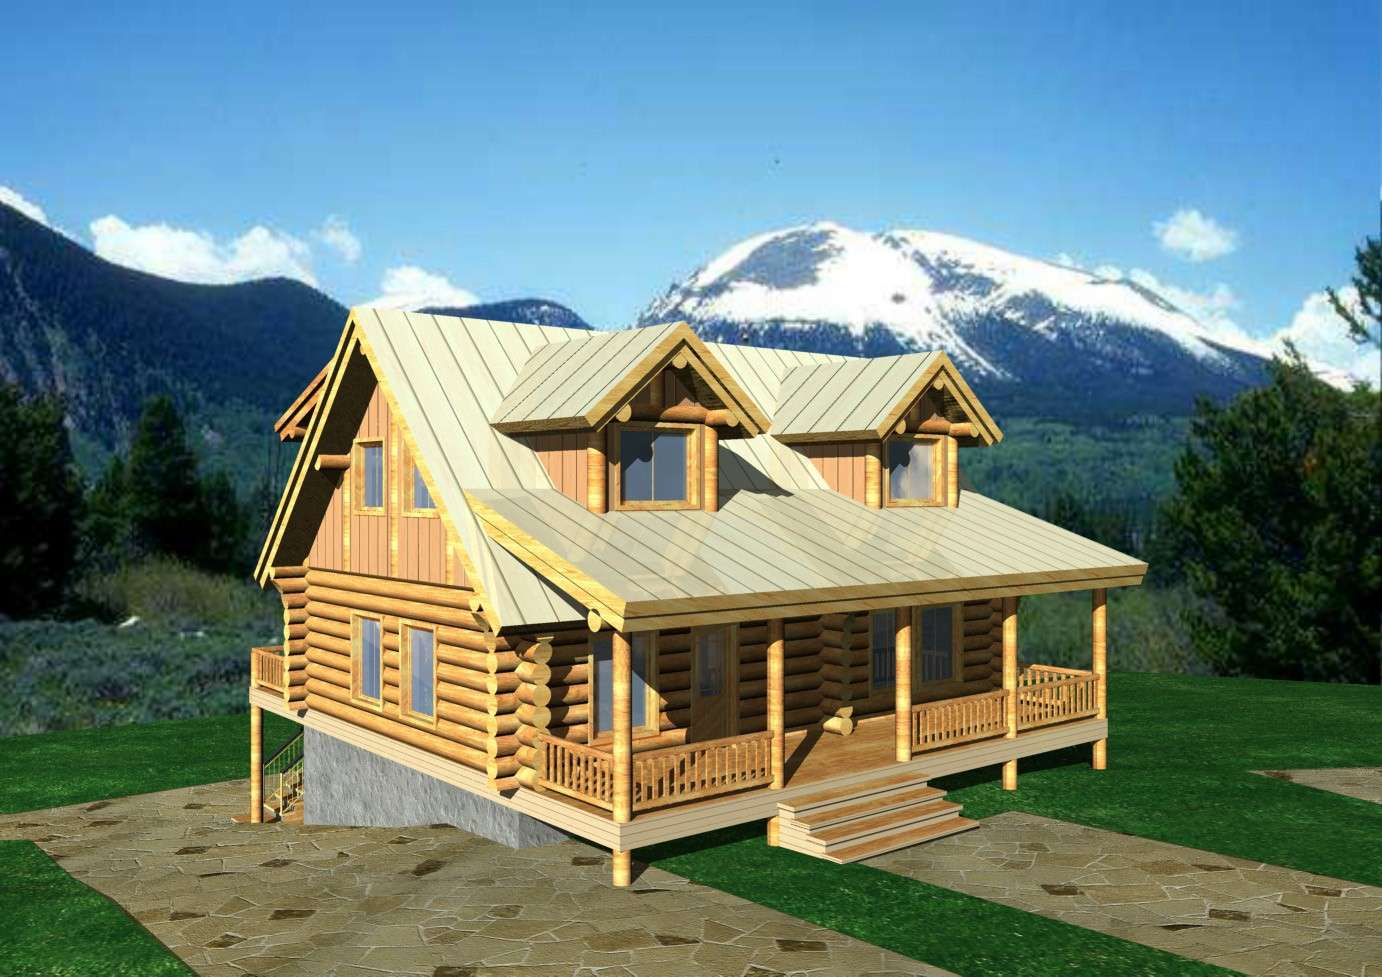 Classic Log Home Design Coast Mountain Homes